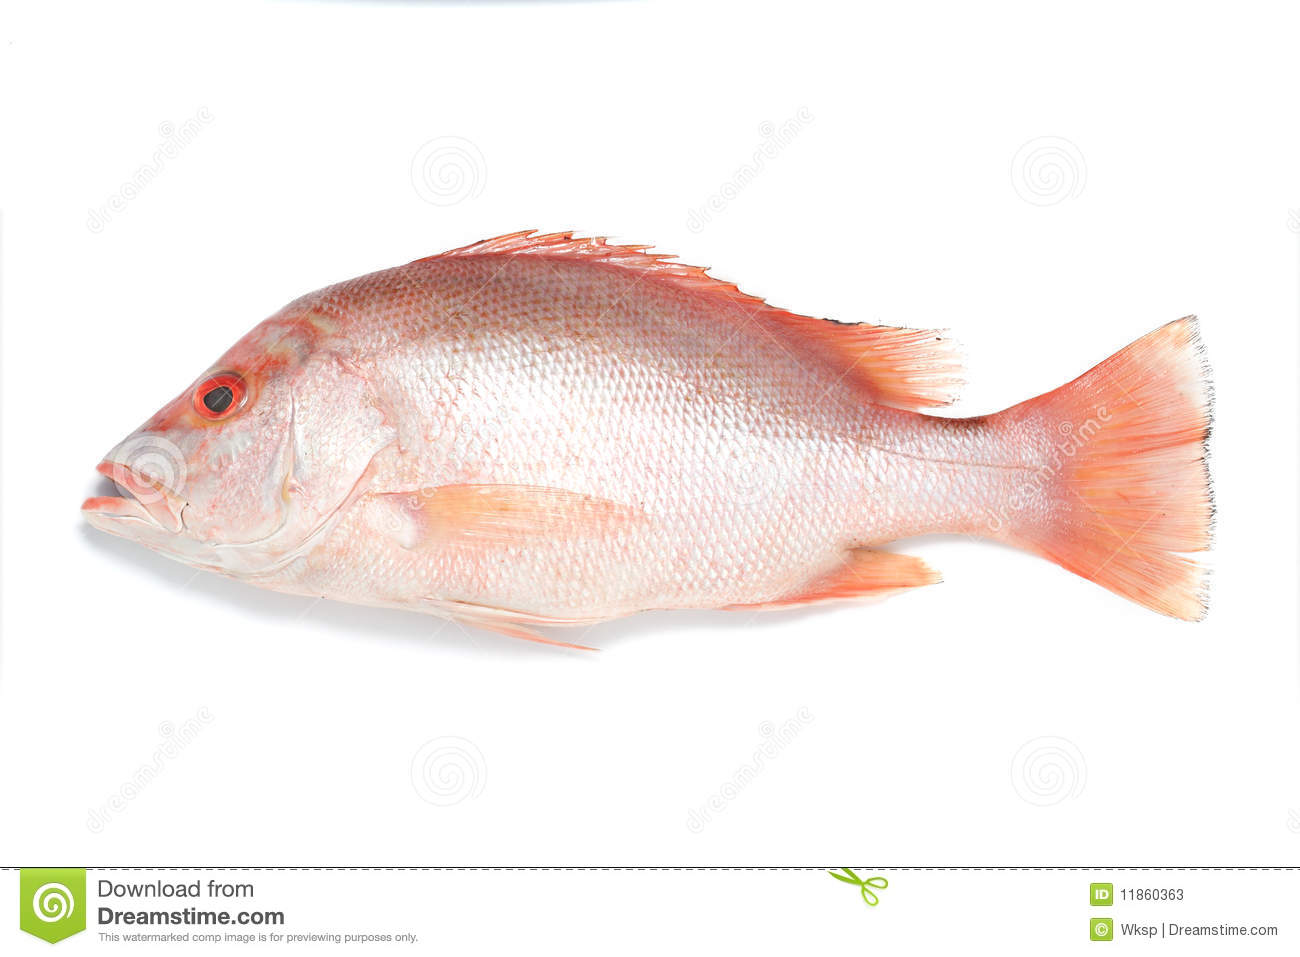 Red snapper fish stock photos image 11860363 for Is a fish wet